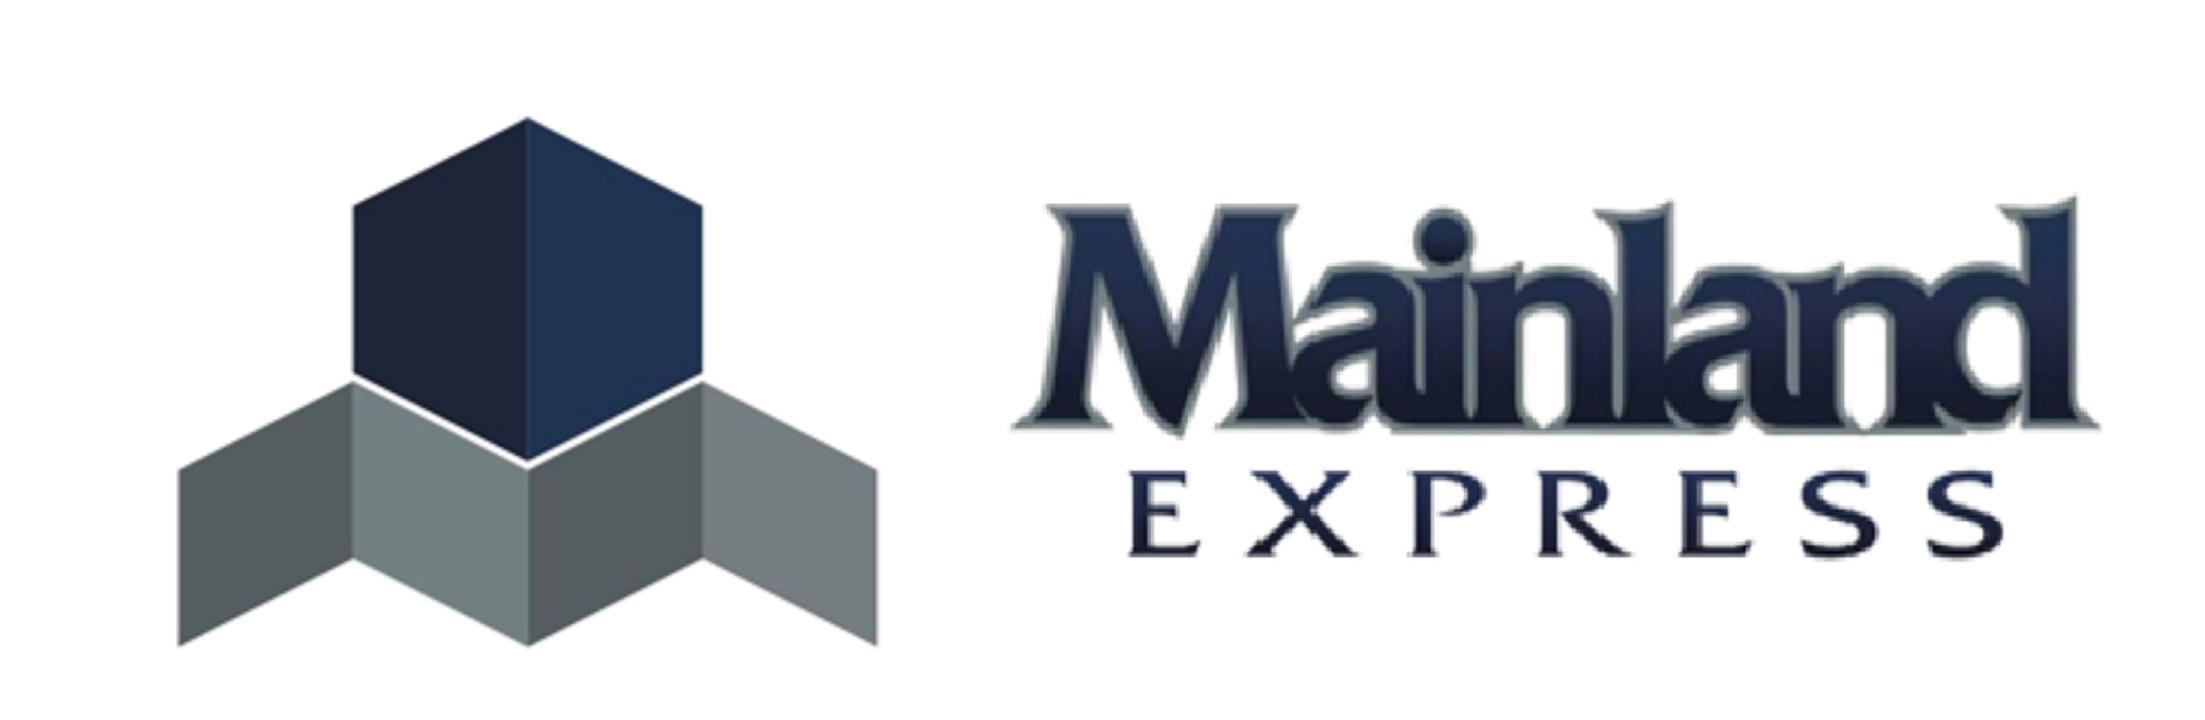 MainLandExpress